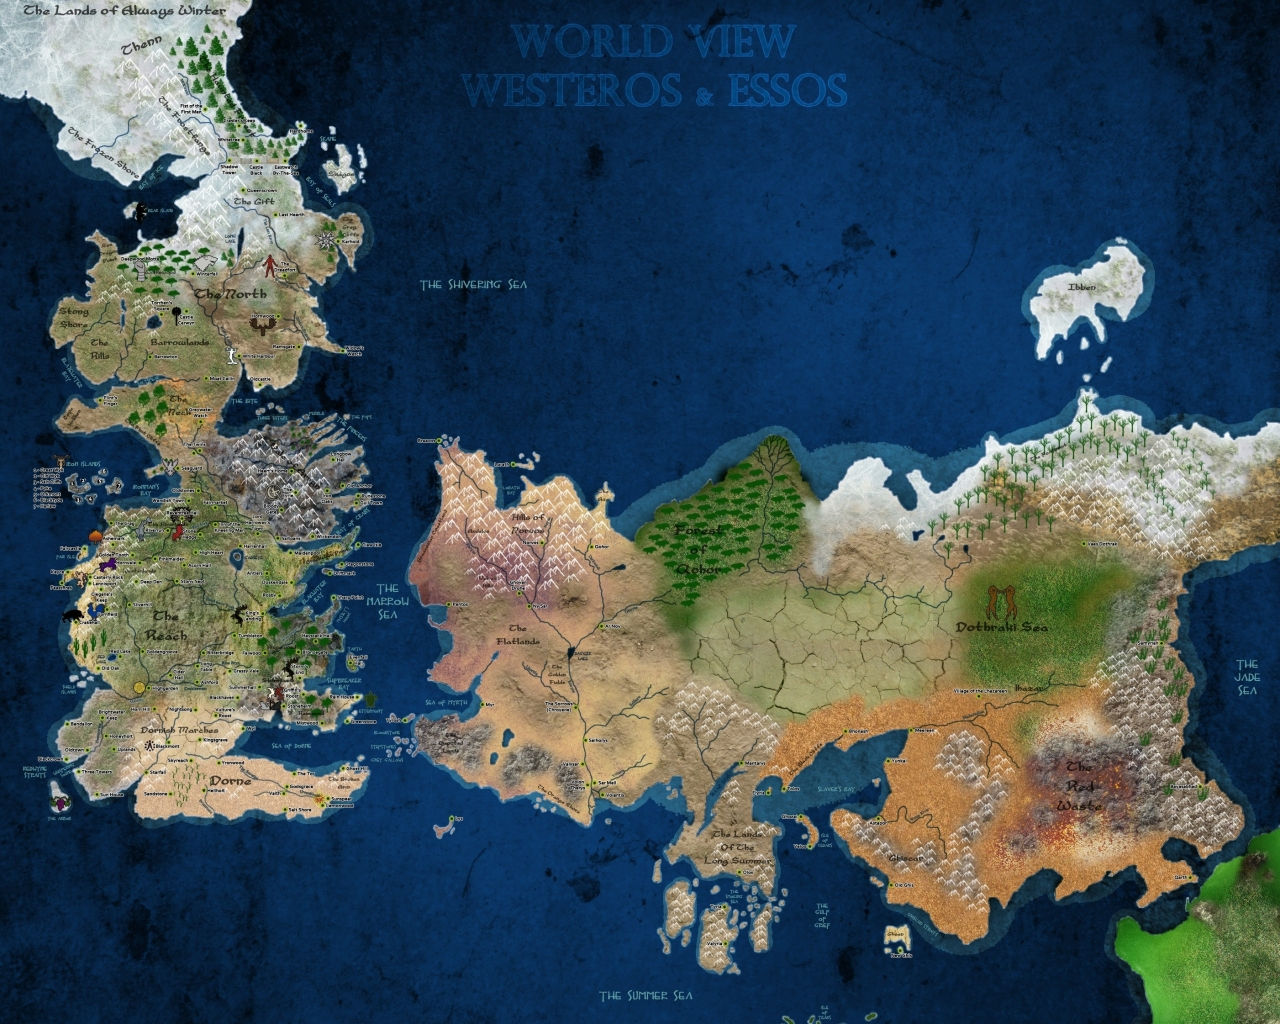 Download Wallpapers Download 1280x1024 maps game of thrones world map 1280x1024